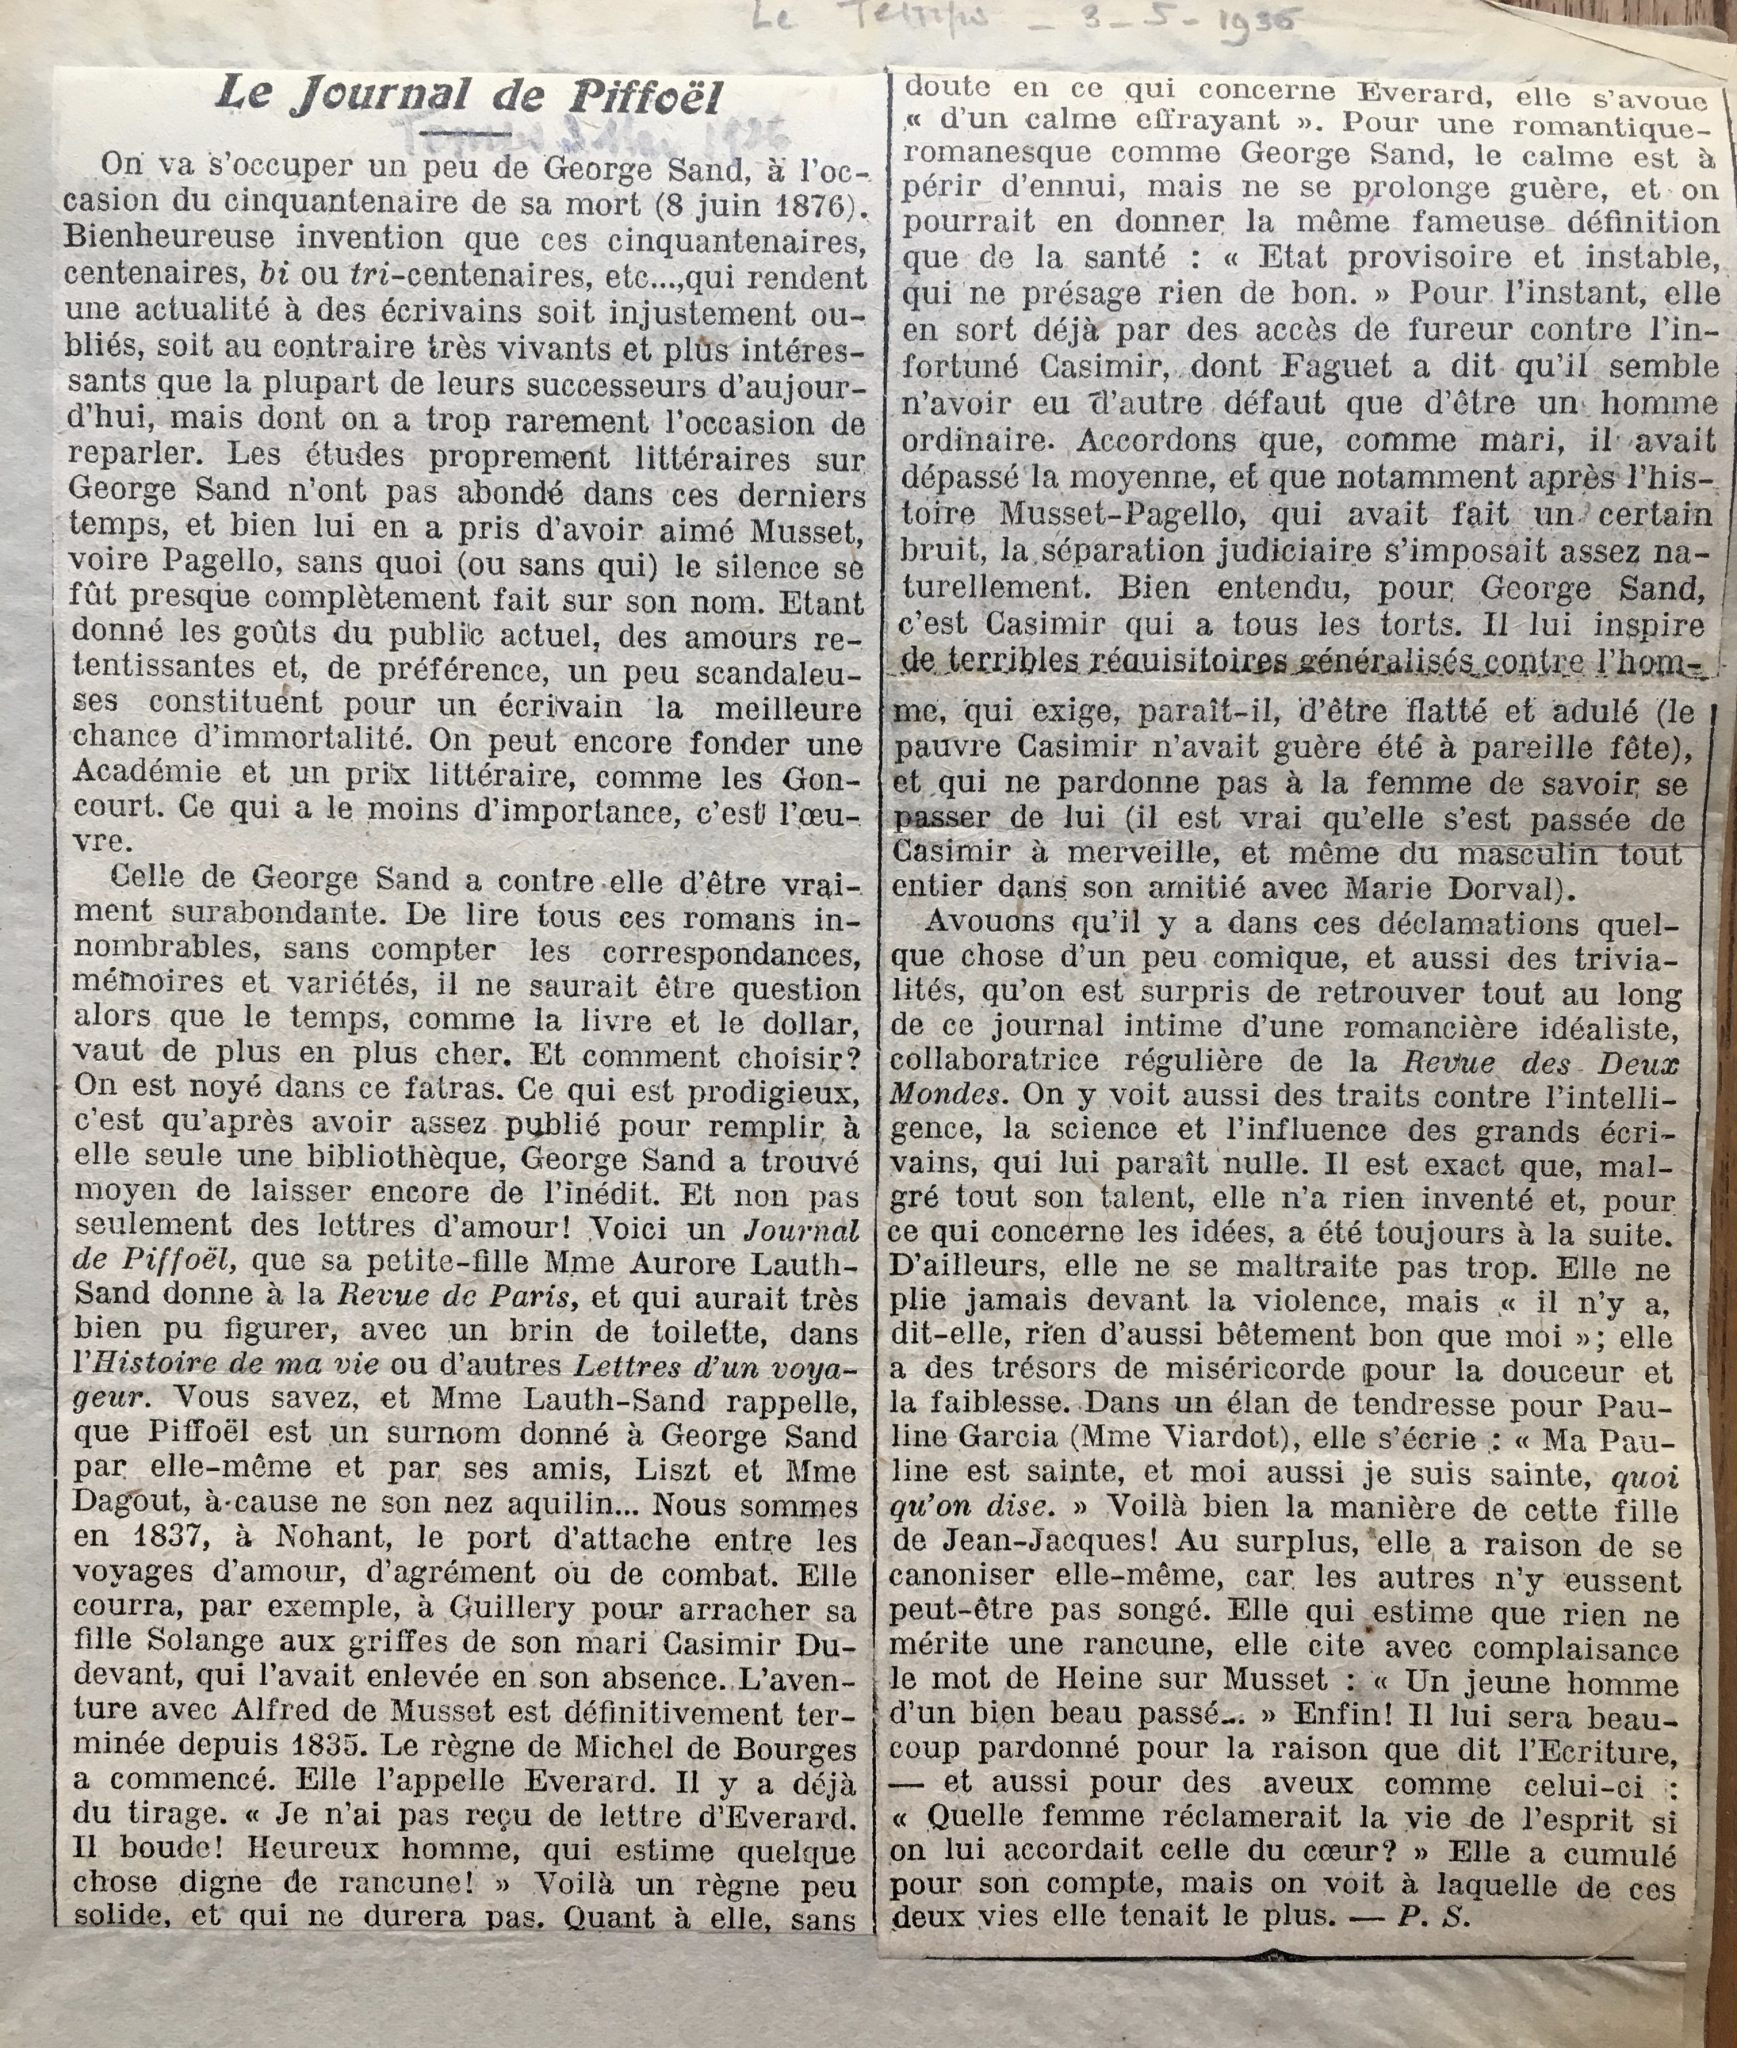 Le journal Piffoël 1935